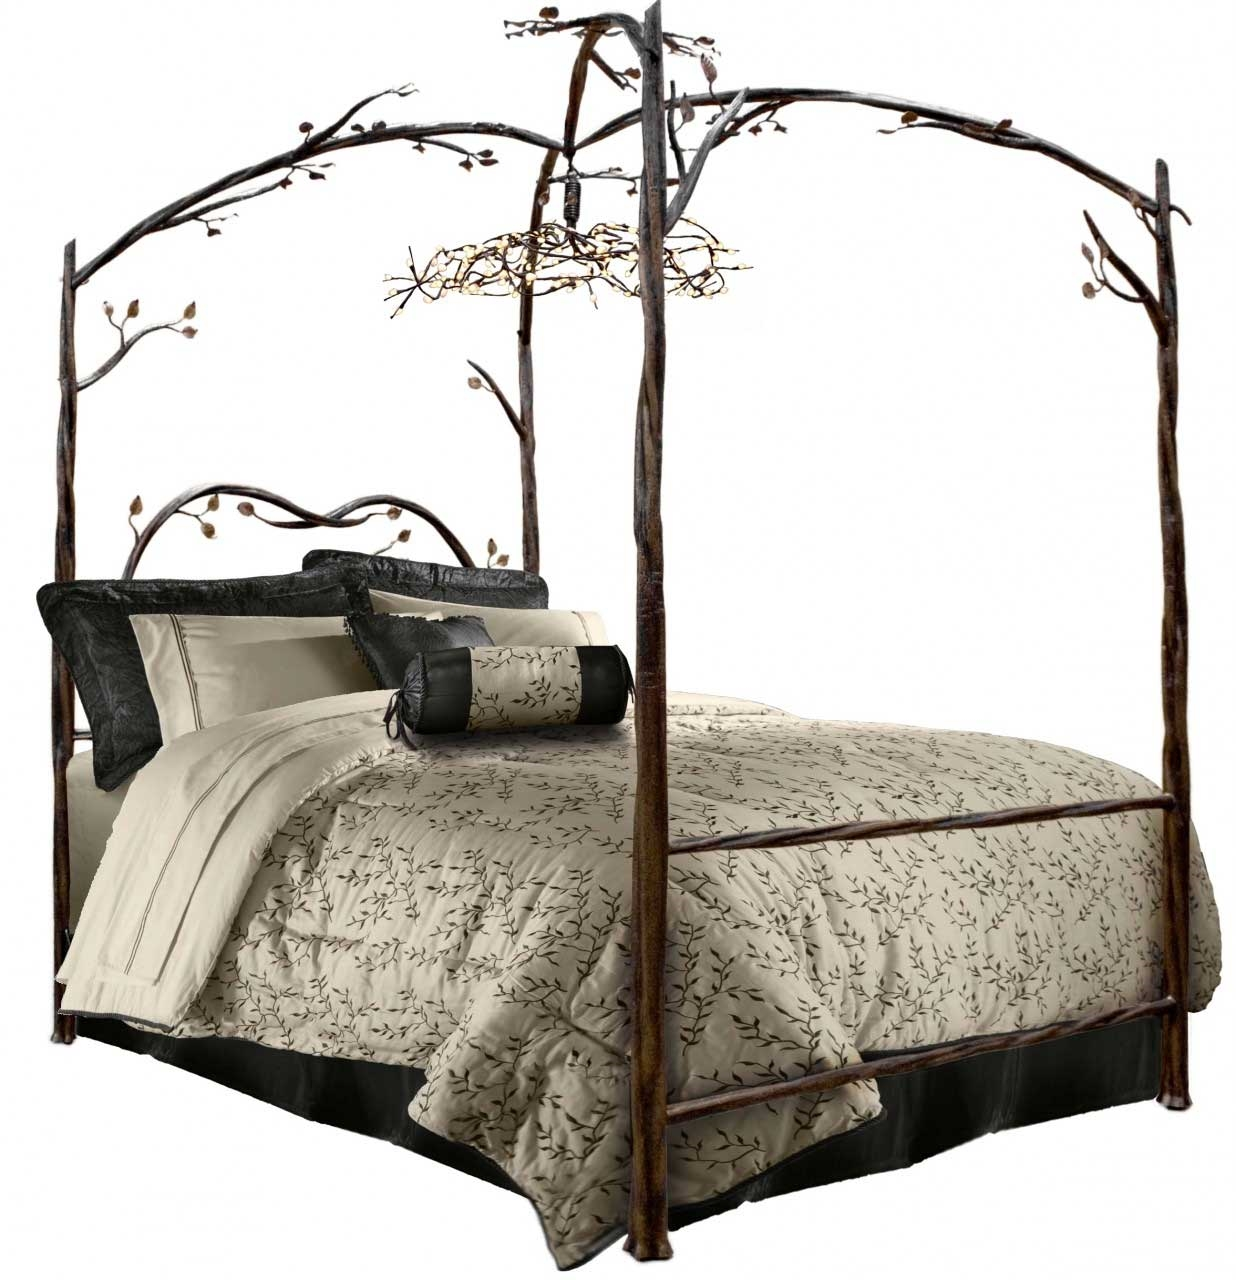 purchase bed wrought for online hand iron made frames frame